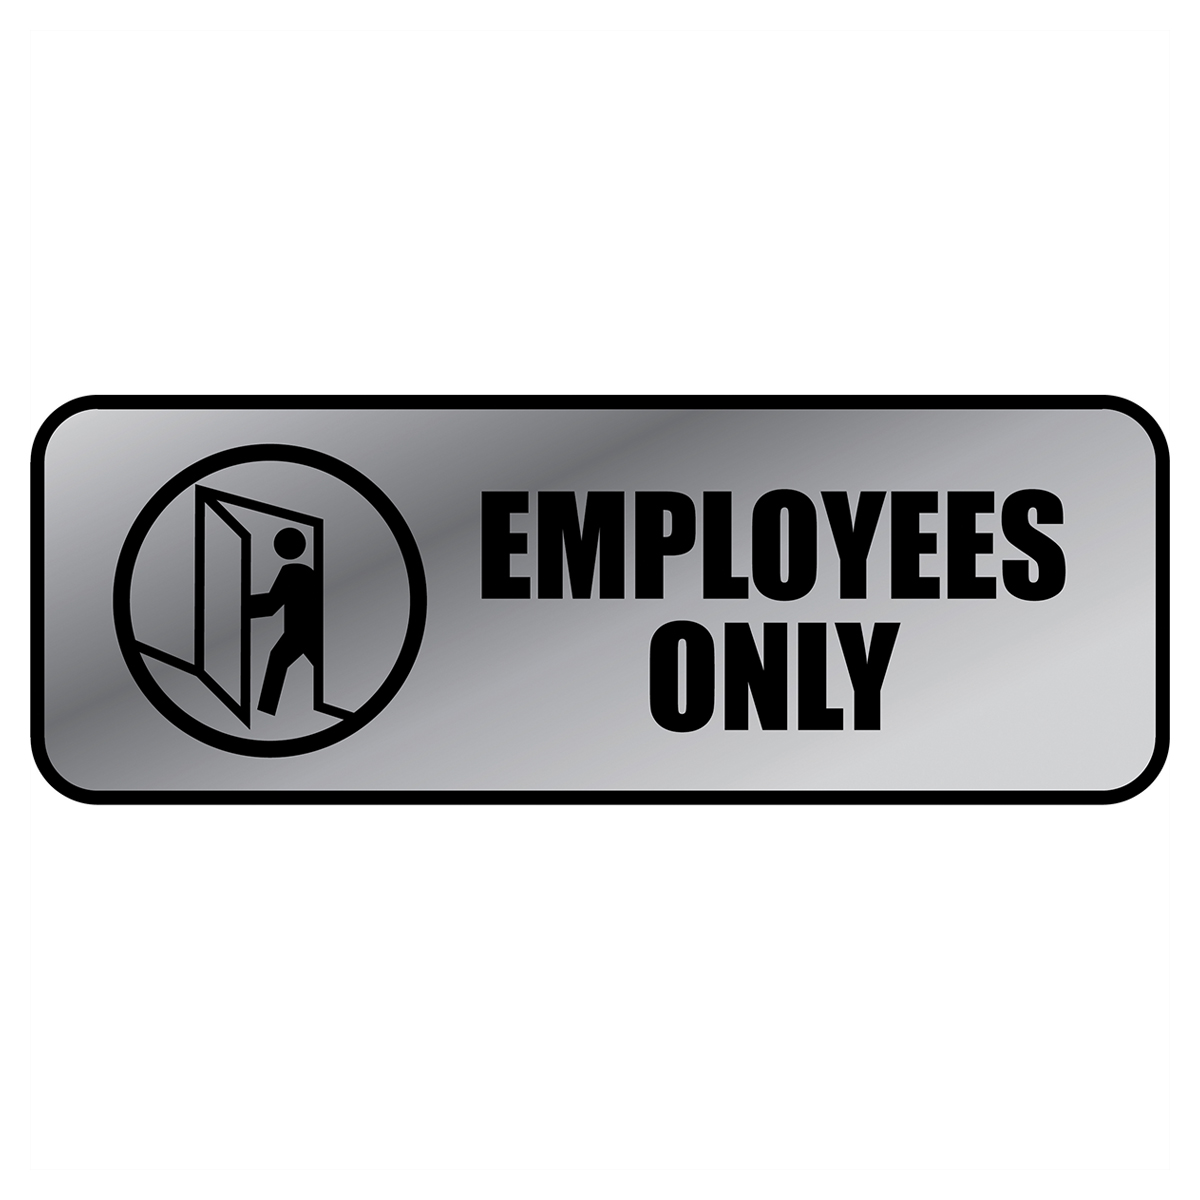 EMPLOYEES ONLY - Metal Sign - 098206